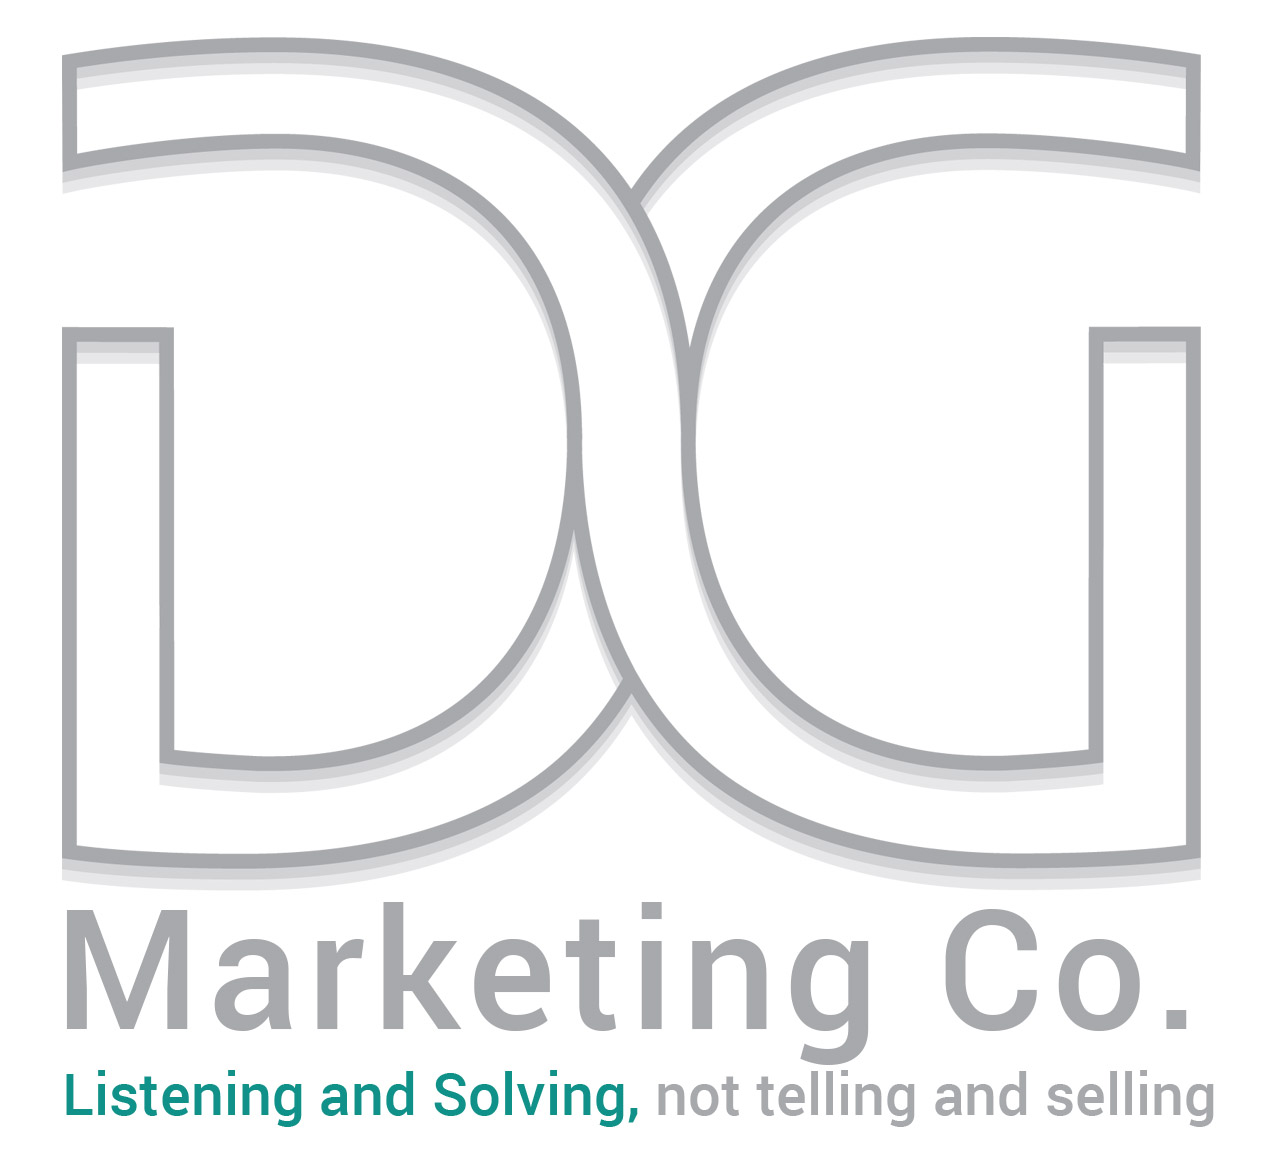 DG Marketing Co logo with tag